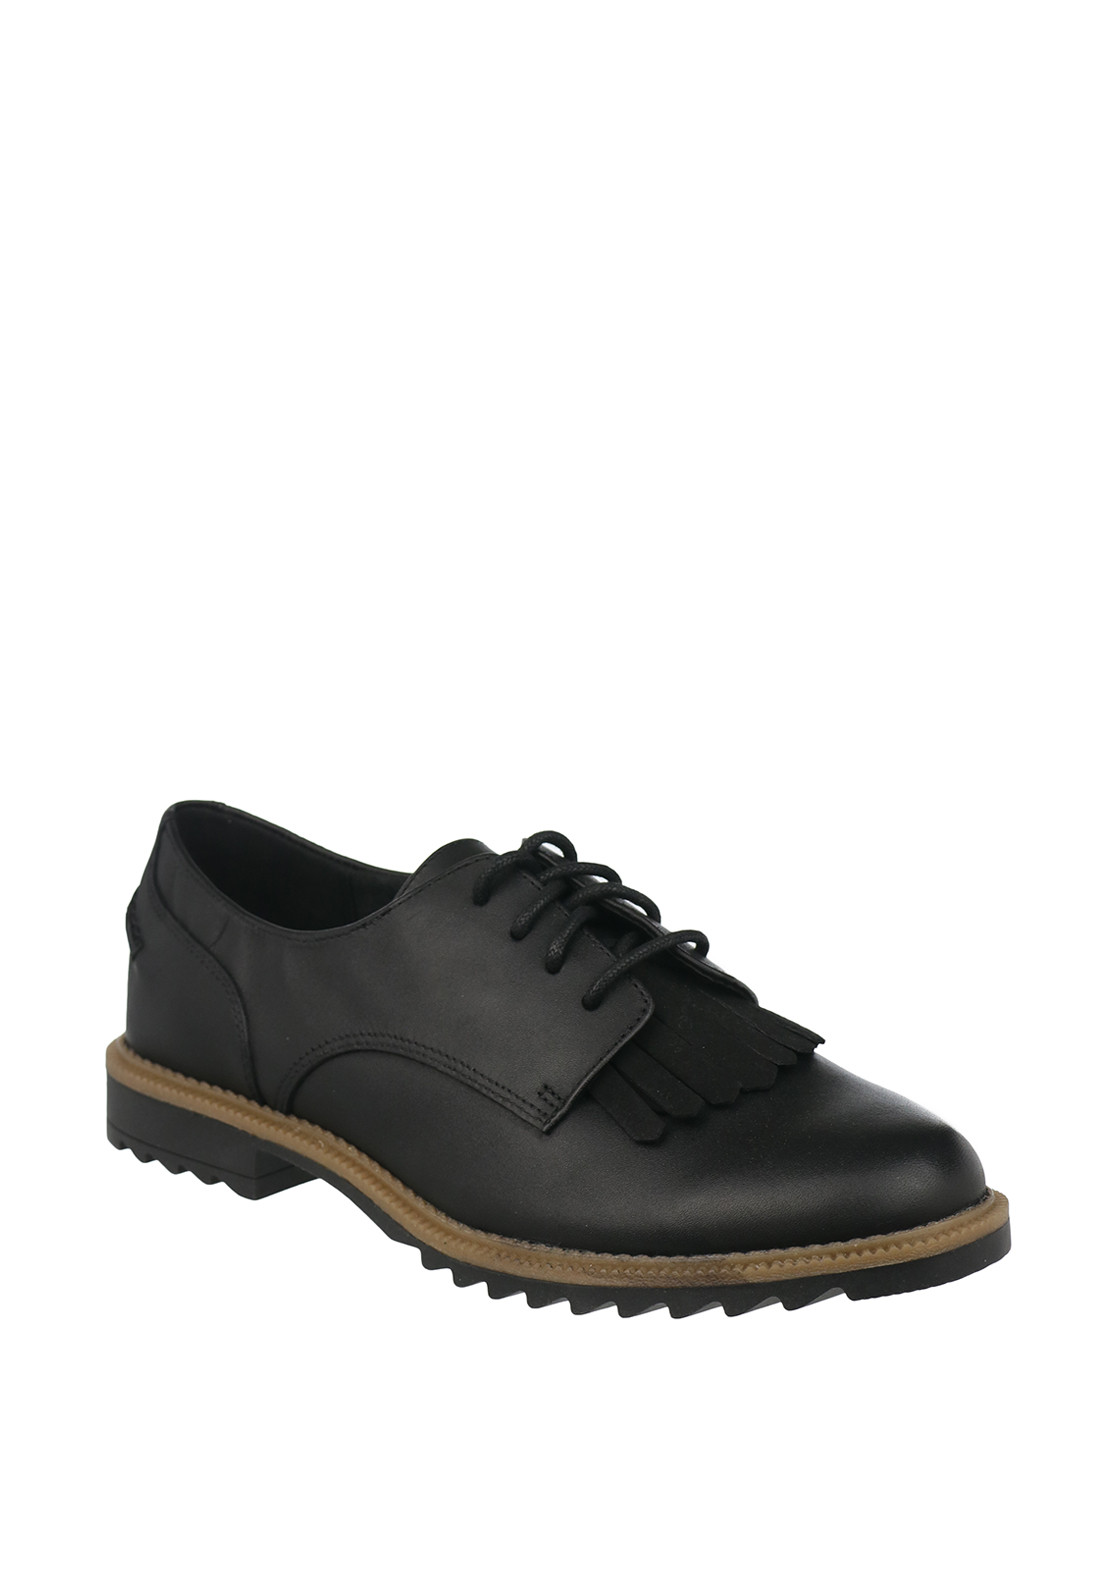 Clarks Womens Griffin Mabel Leather Brogue Shoes, Black